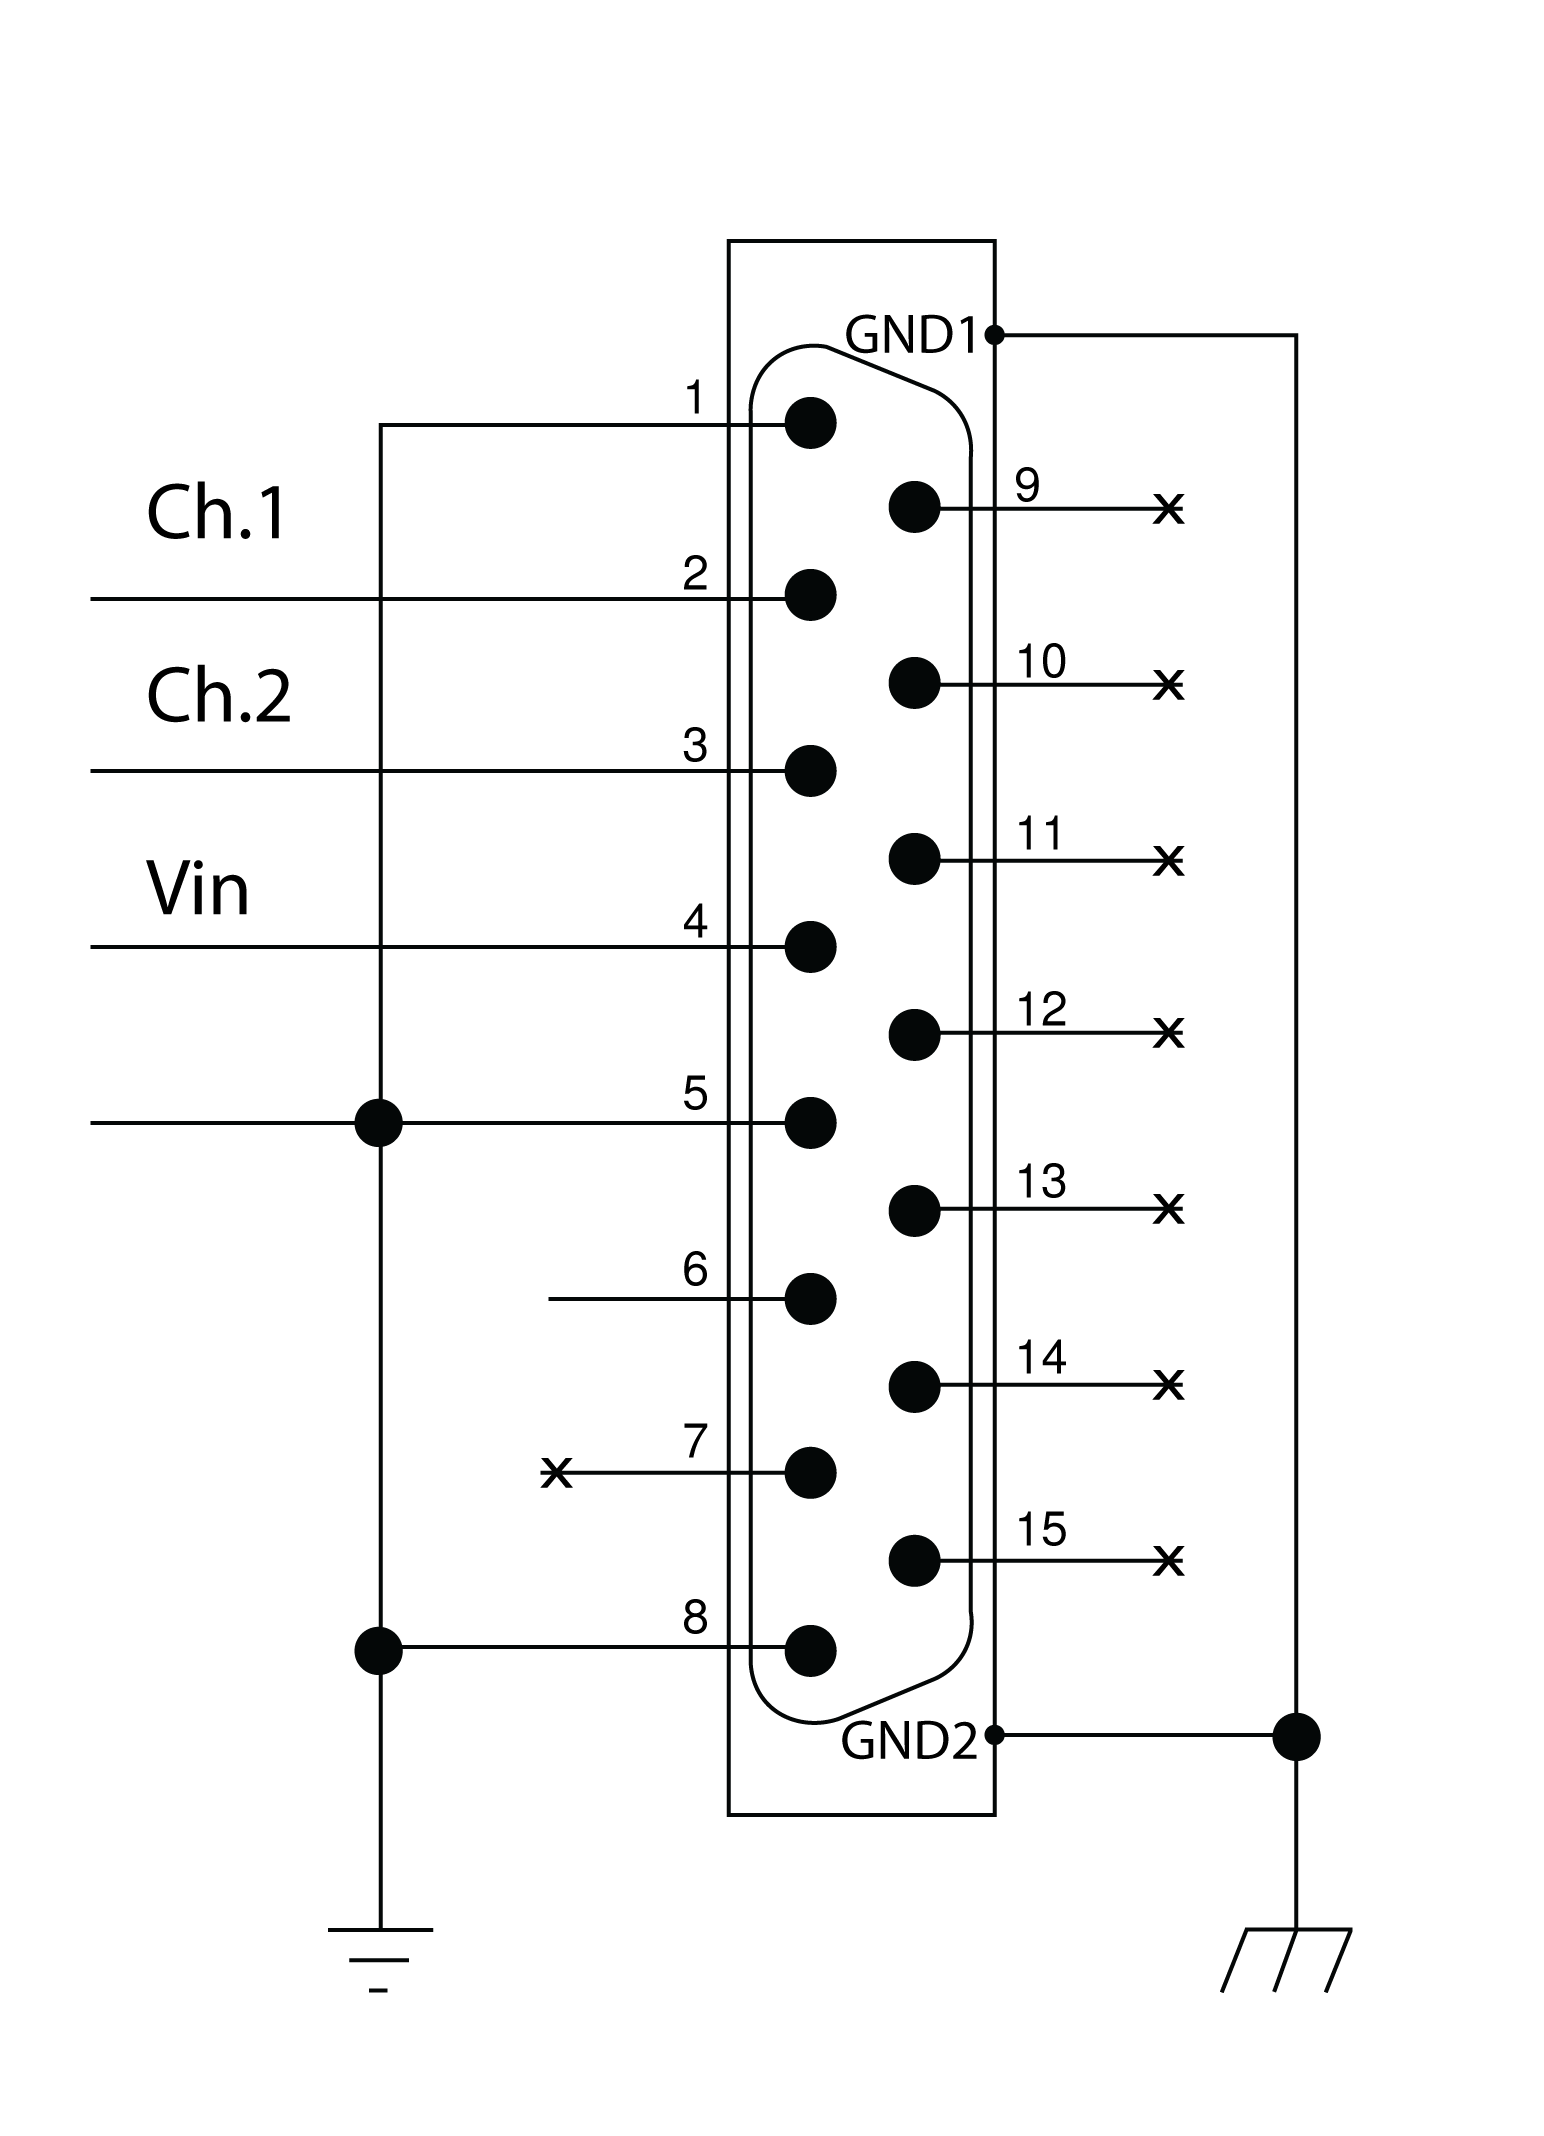 Pinout diagram for DB15 connector.